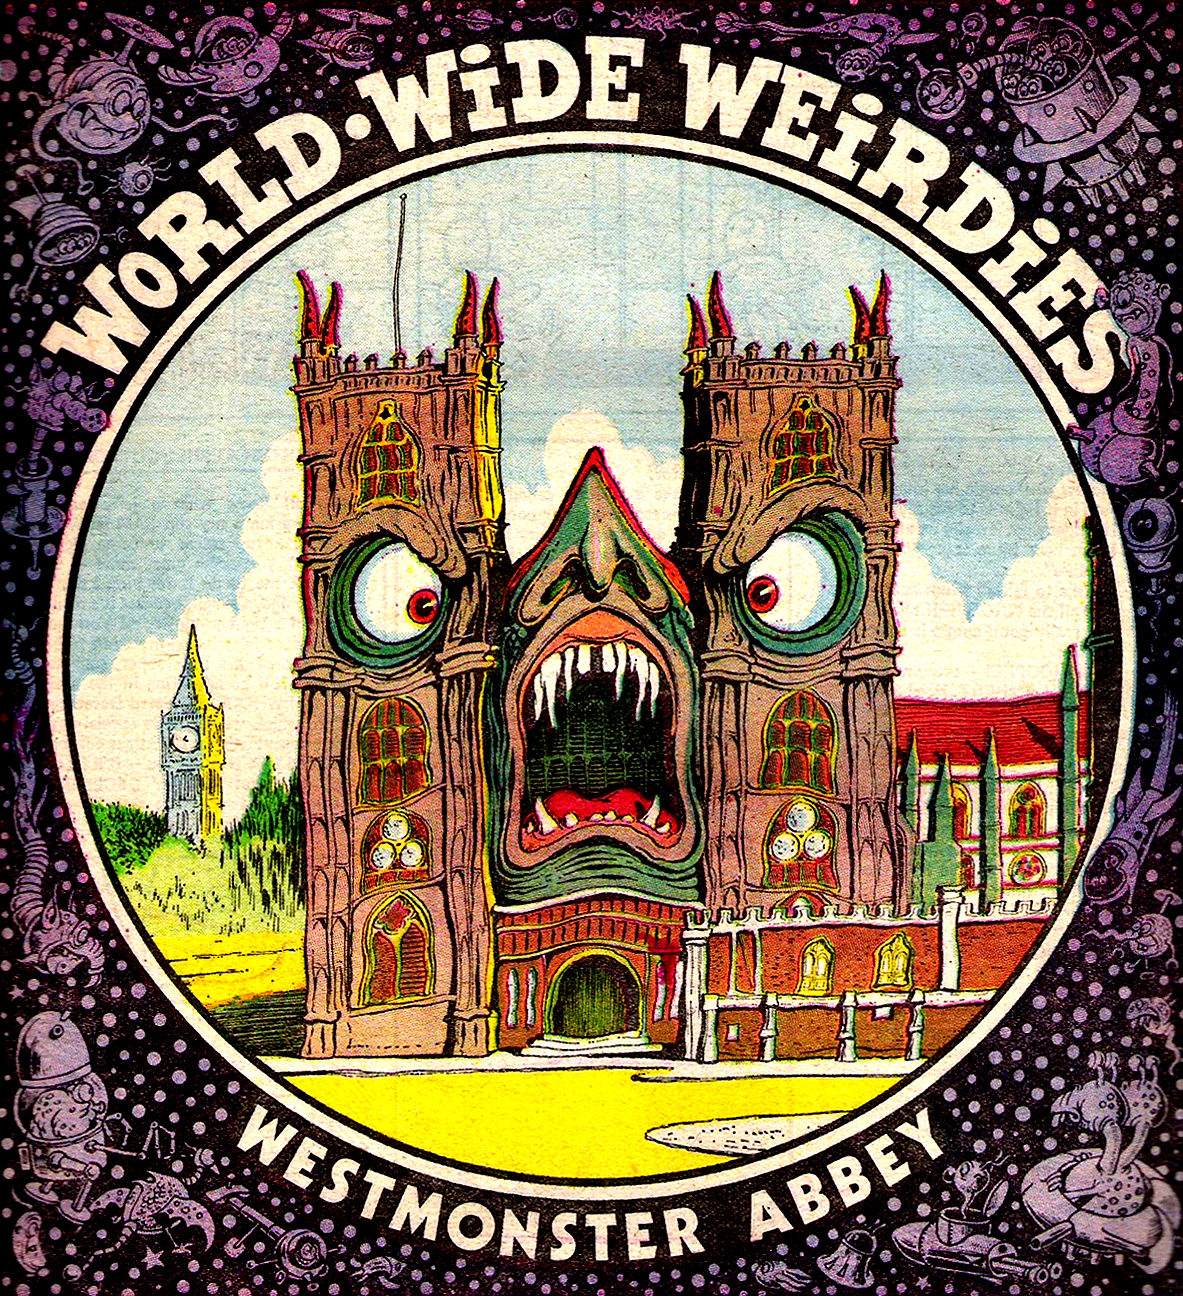 Ken Reid - World Wide Weirdies 71